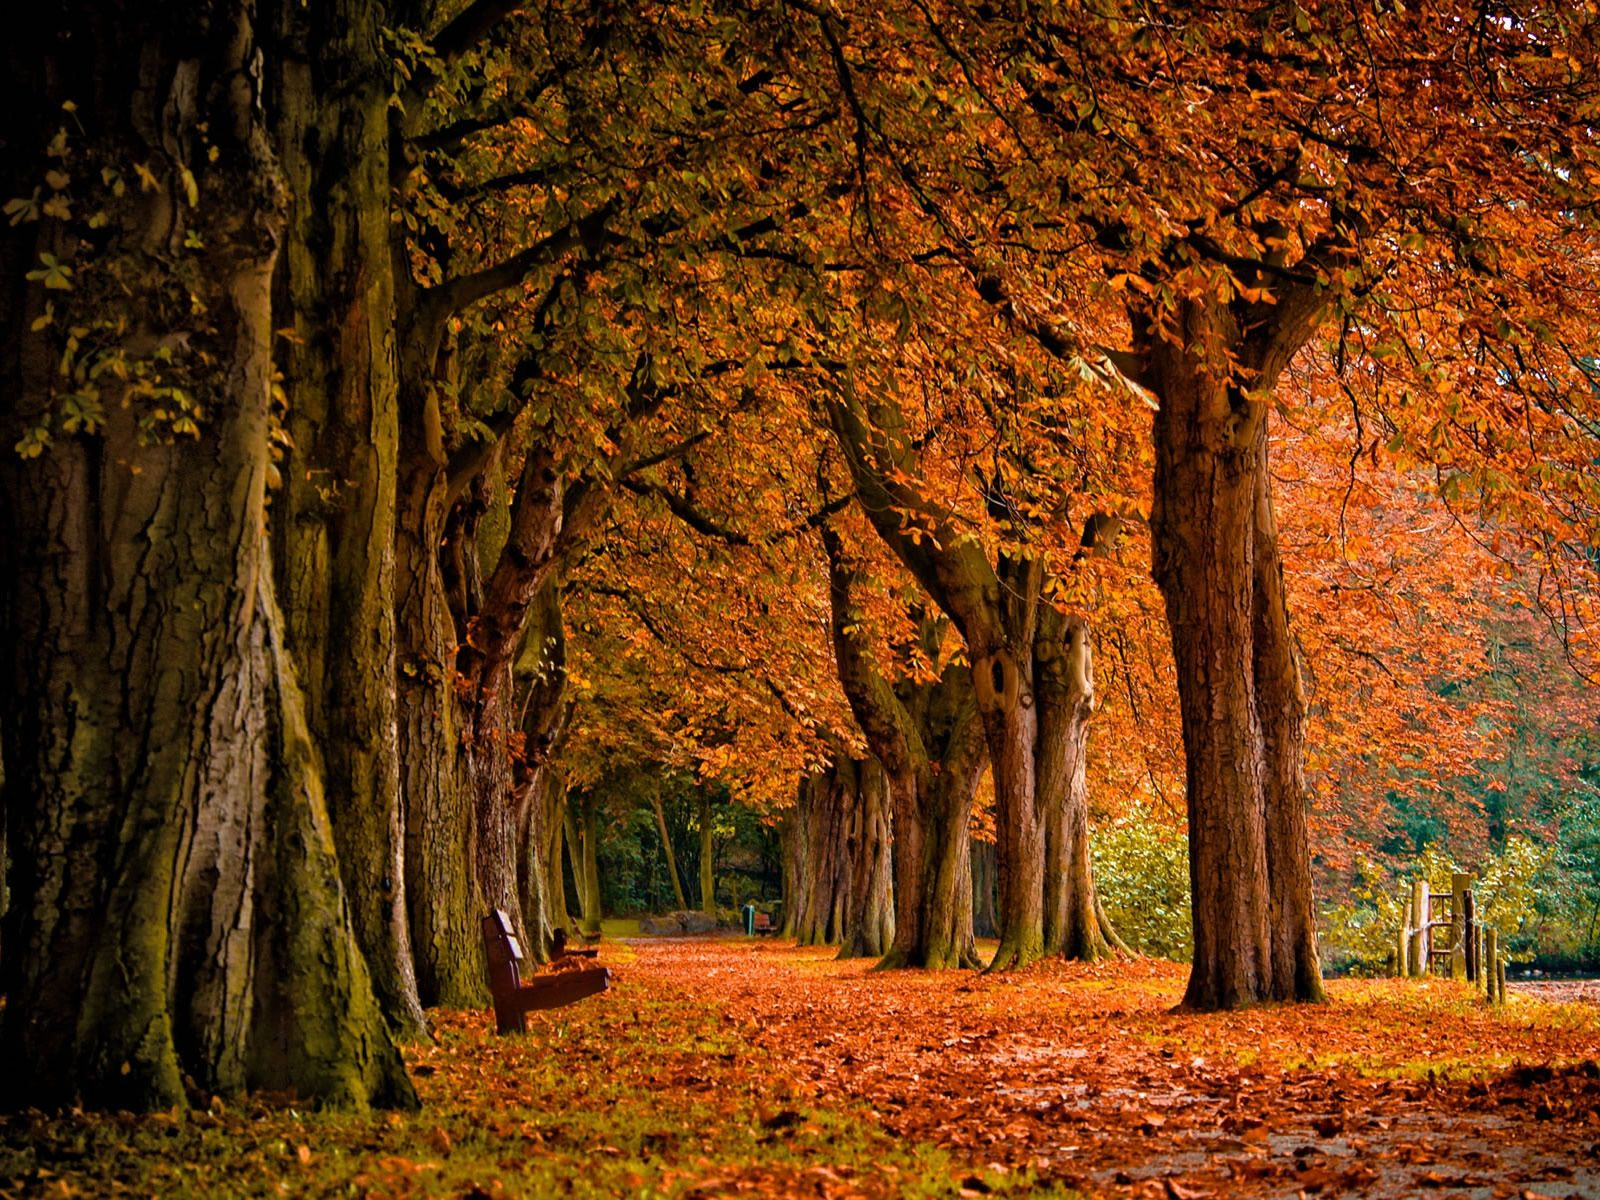 Absolutely love this fall scenery. I'd love to sit on that park bench and read all day, with a cup of apple cider in hand.